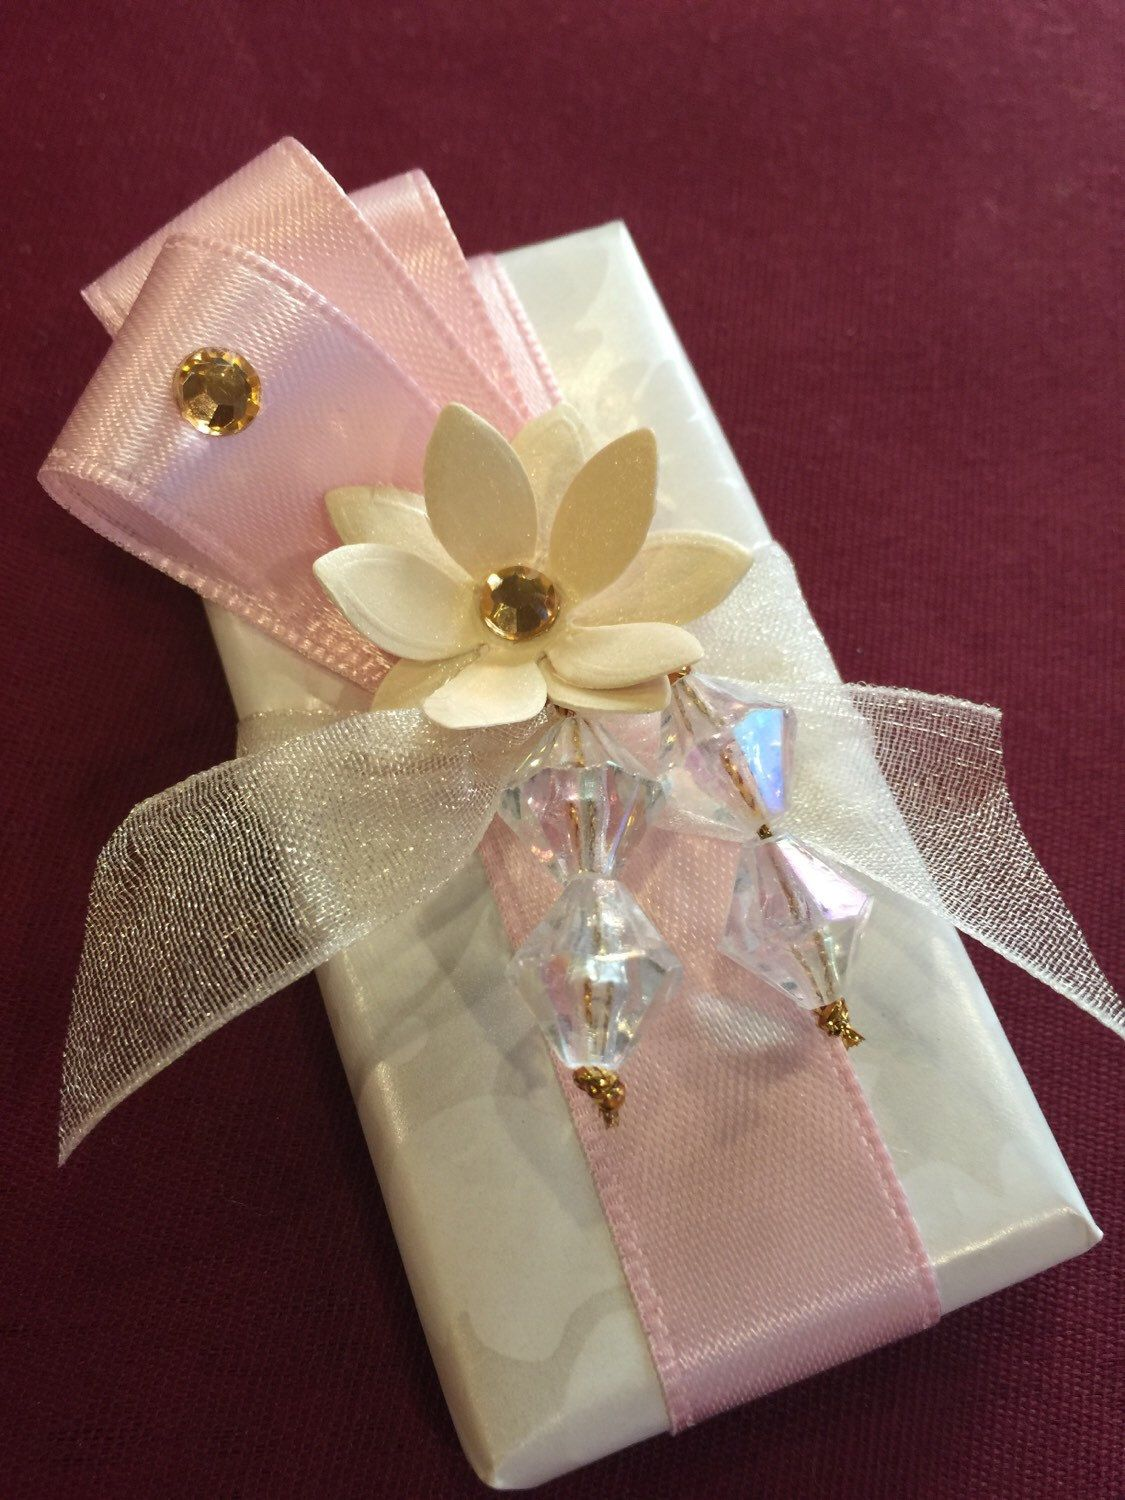 6 Edible wrapped presents  Decorations Christening Birthday